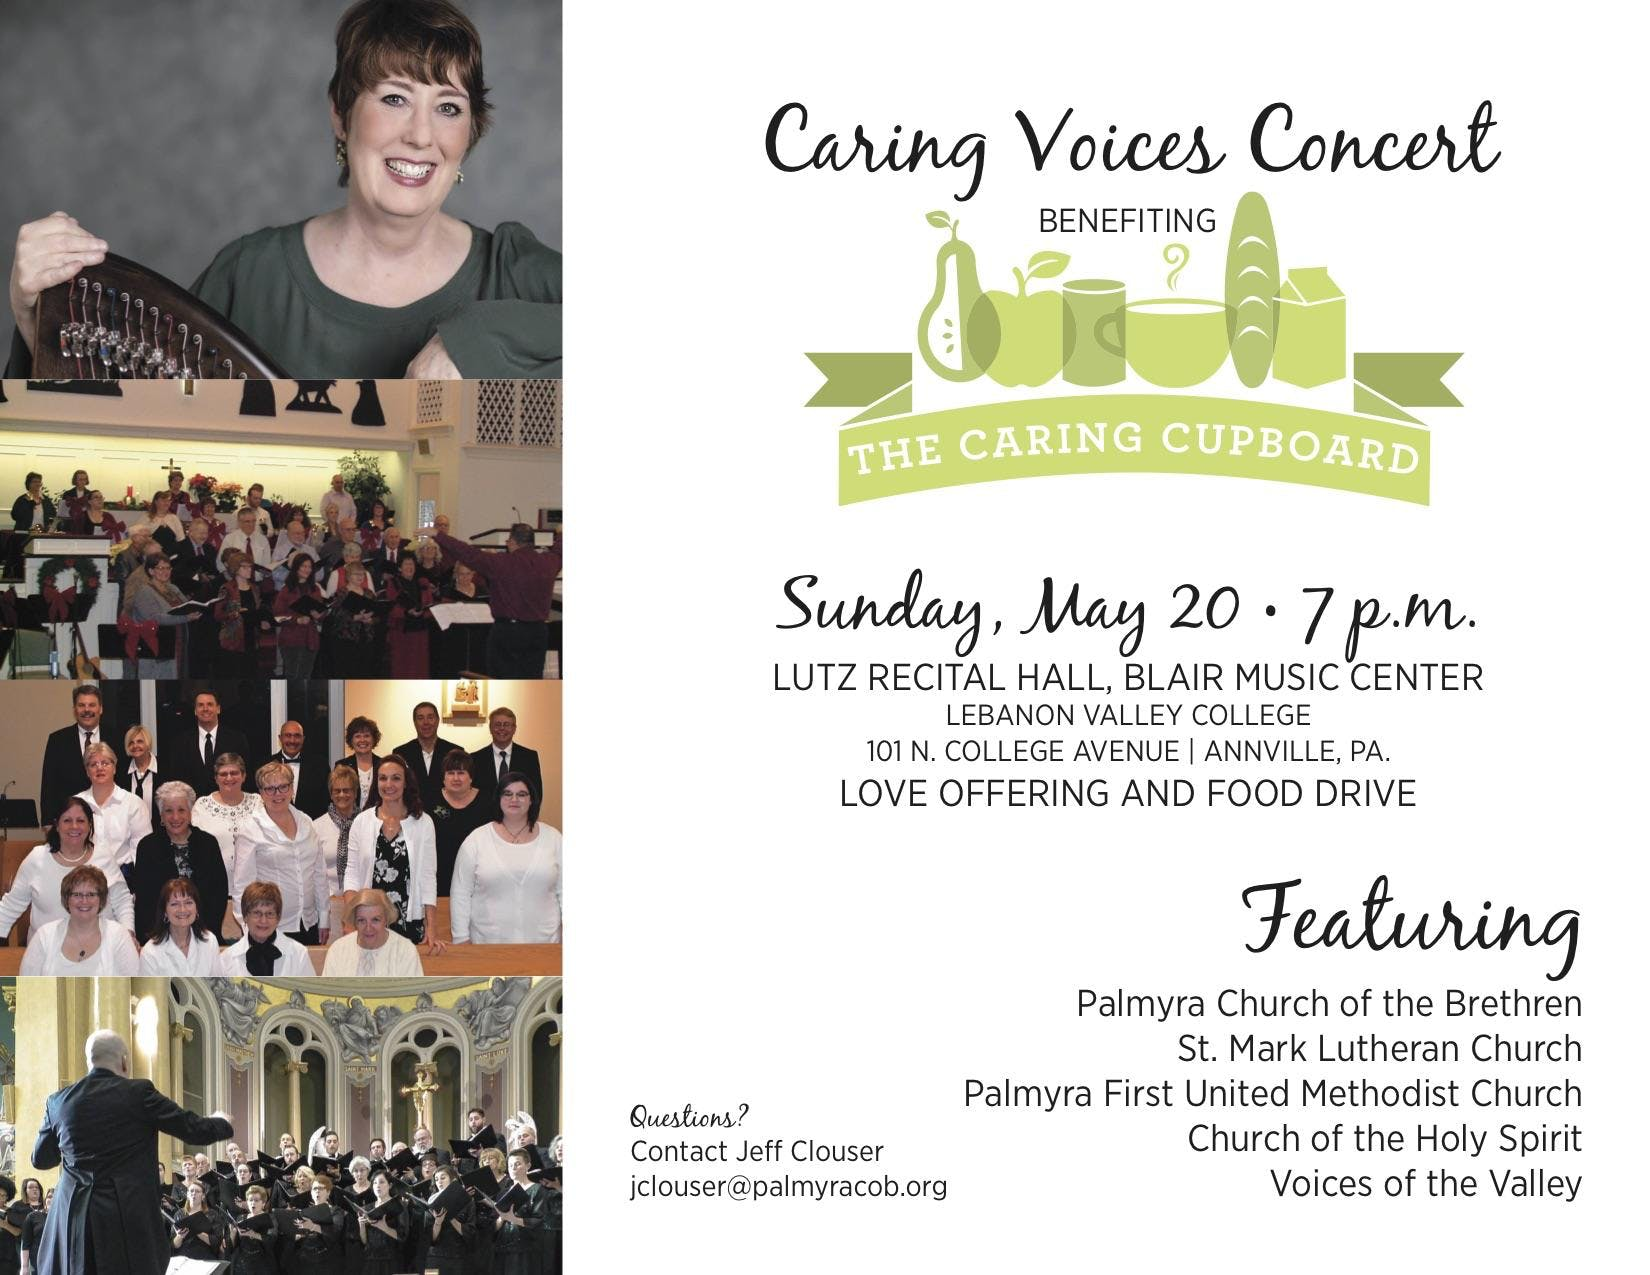 Caring Voices Concert